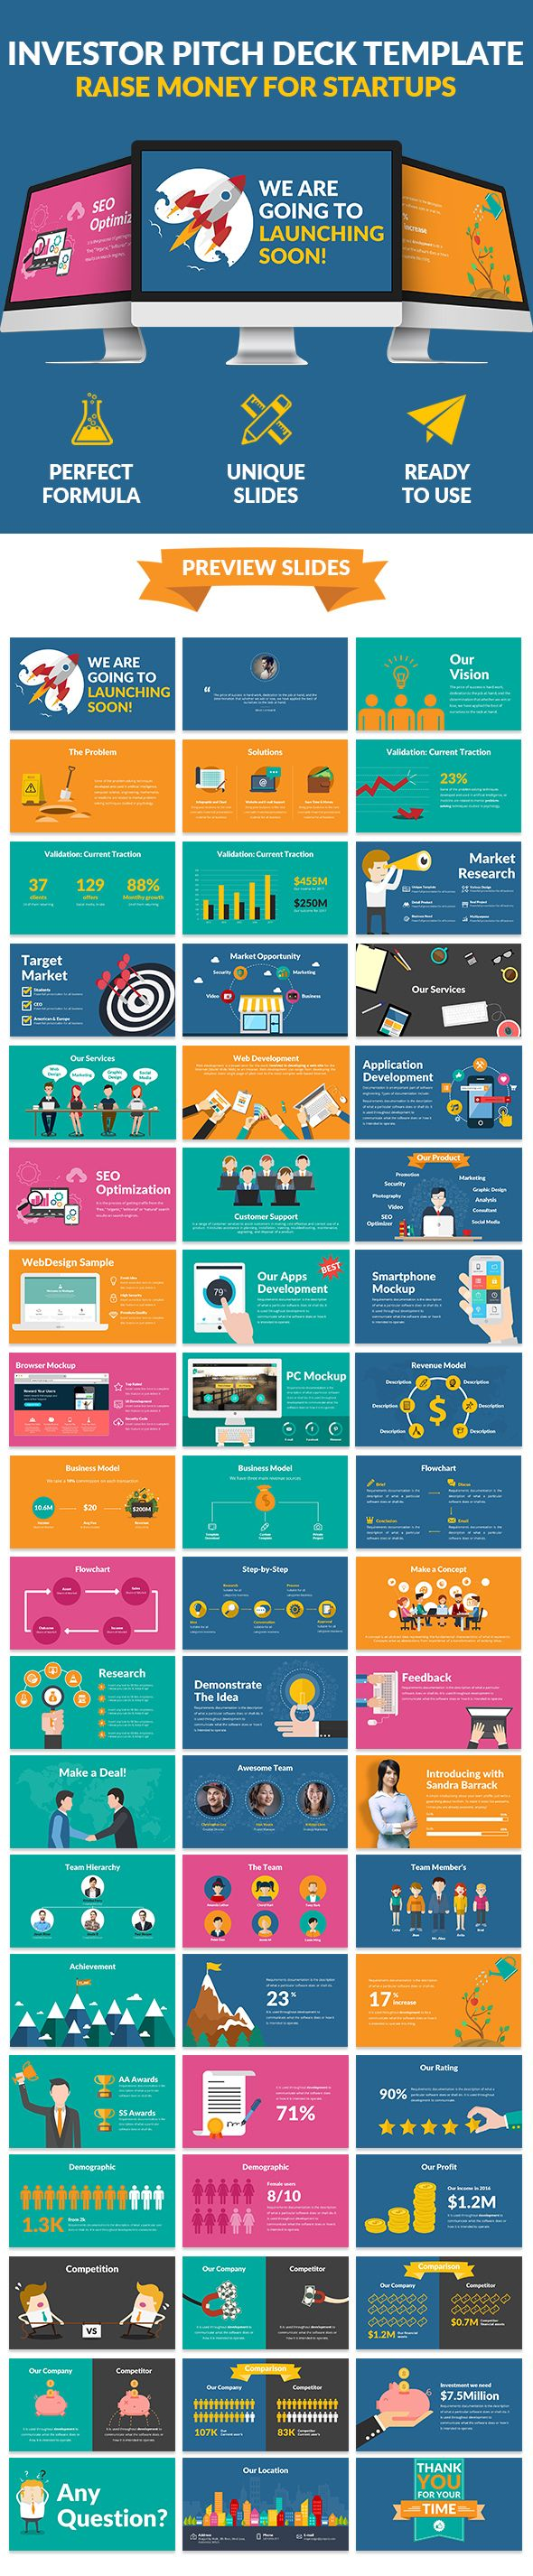 Flat Pitch Deck  Raise Money For Startups  #clean #blue • Download ➝ https://graphicriver.net/item/flat-pitch-deck-raise-money-for-startups/18161342?ref=pxcr